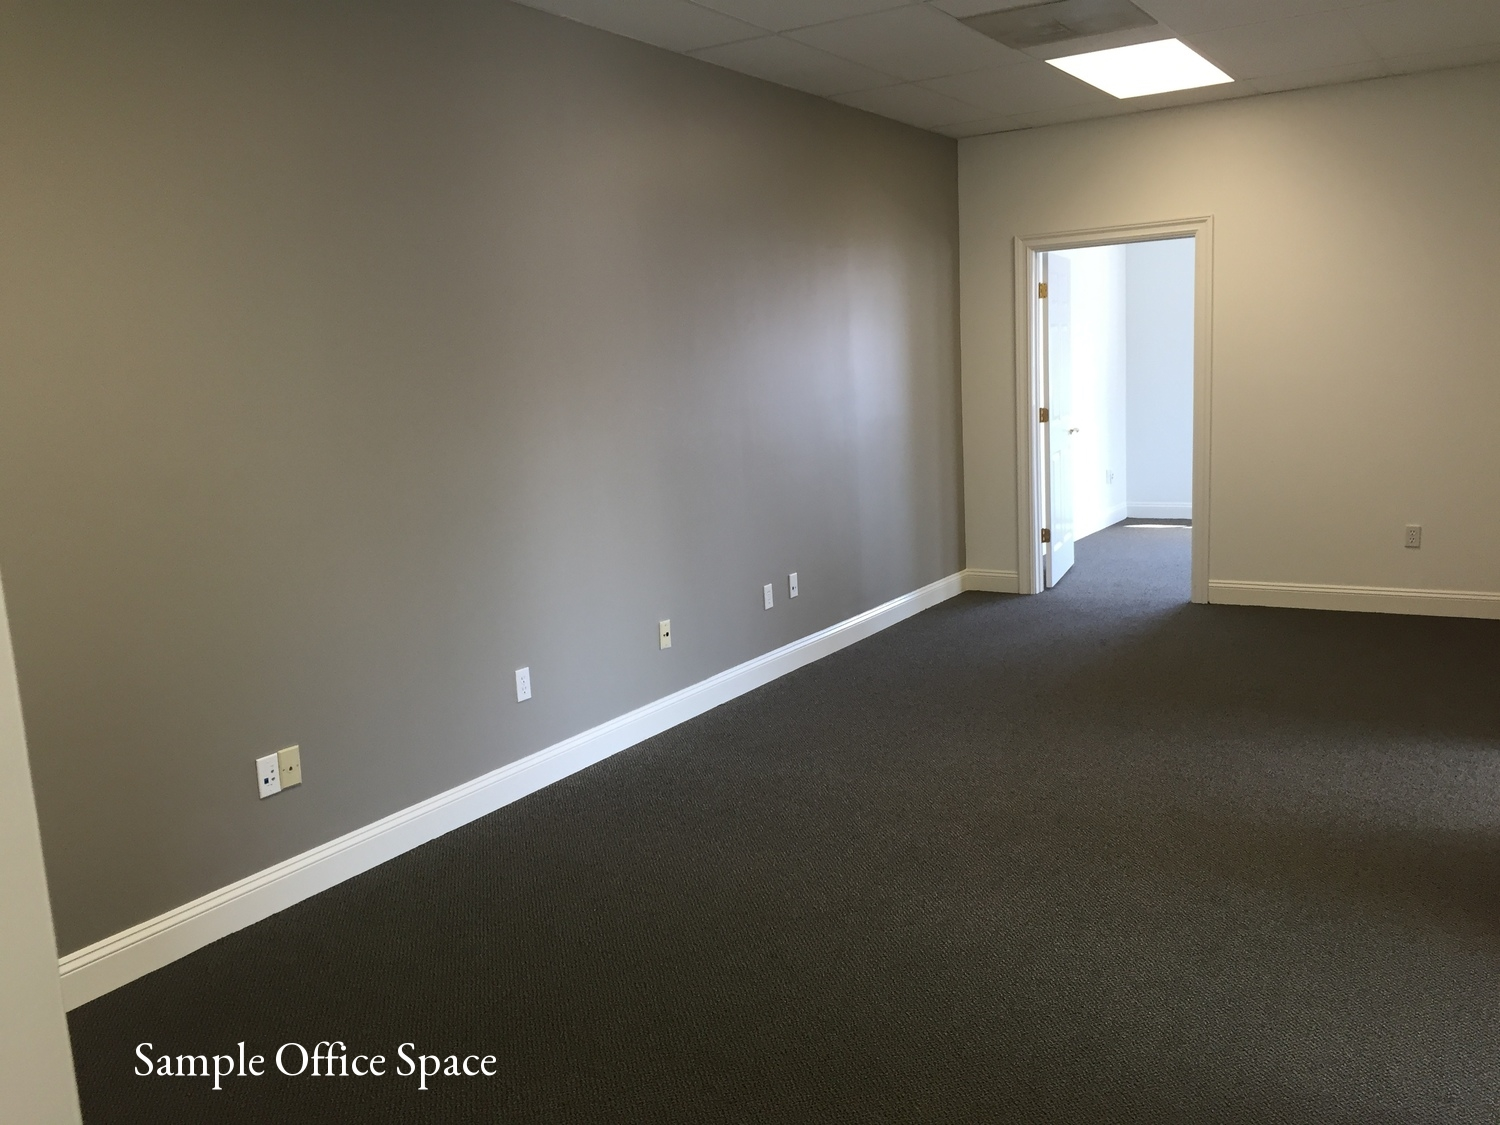 Sample Office Space